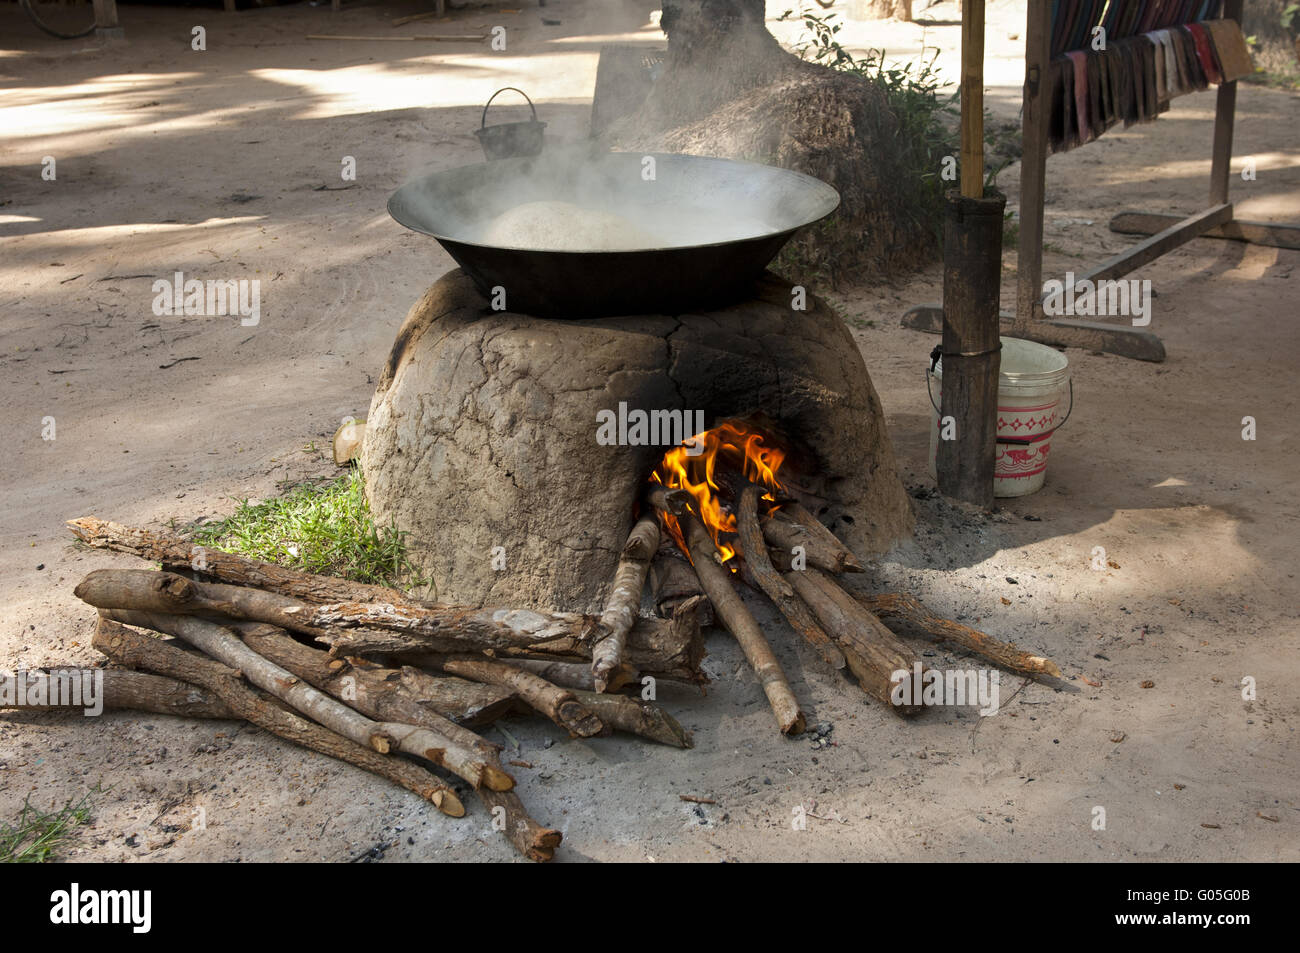 Oven with bowl to cook palm sap into  palm sugar Stock Photo